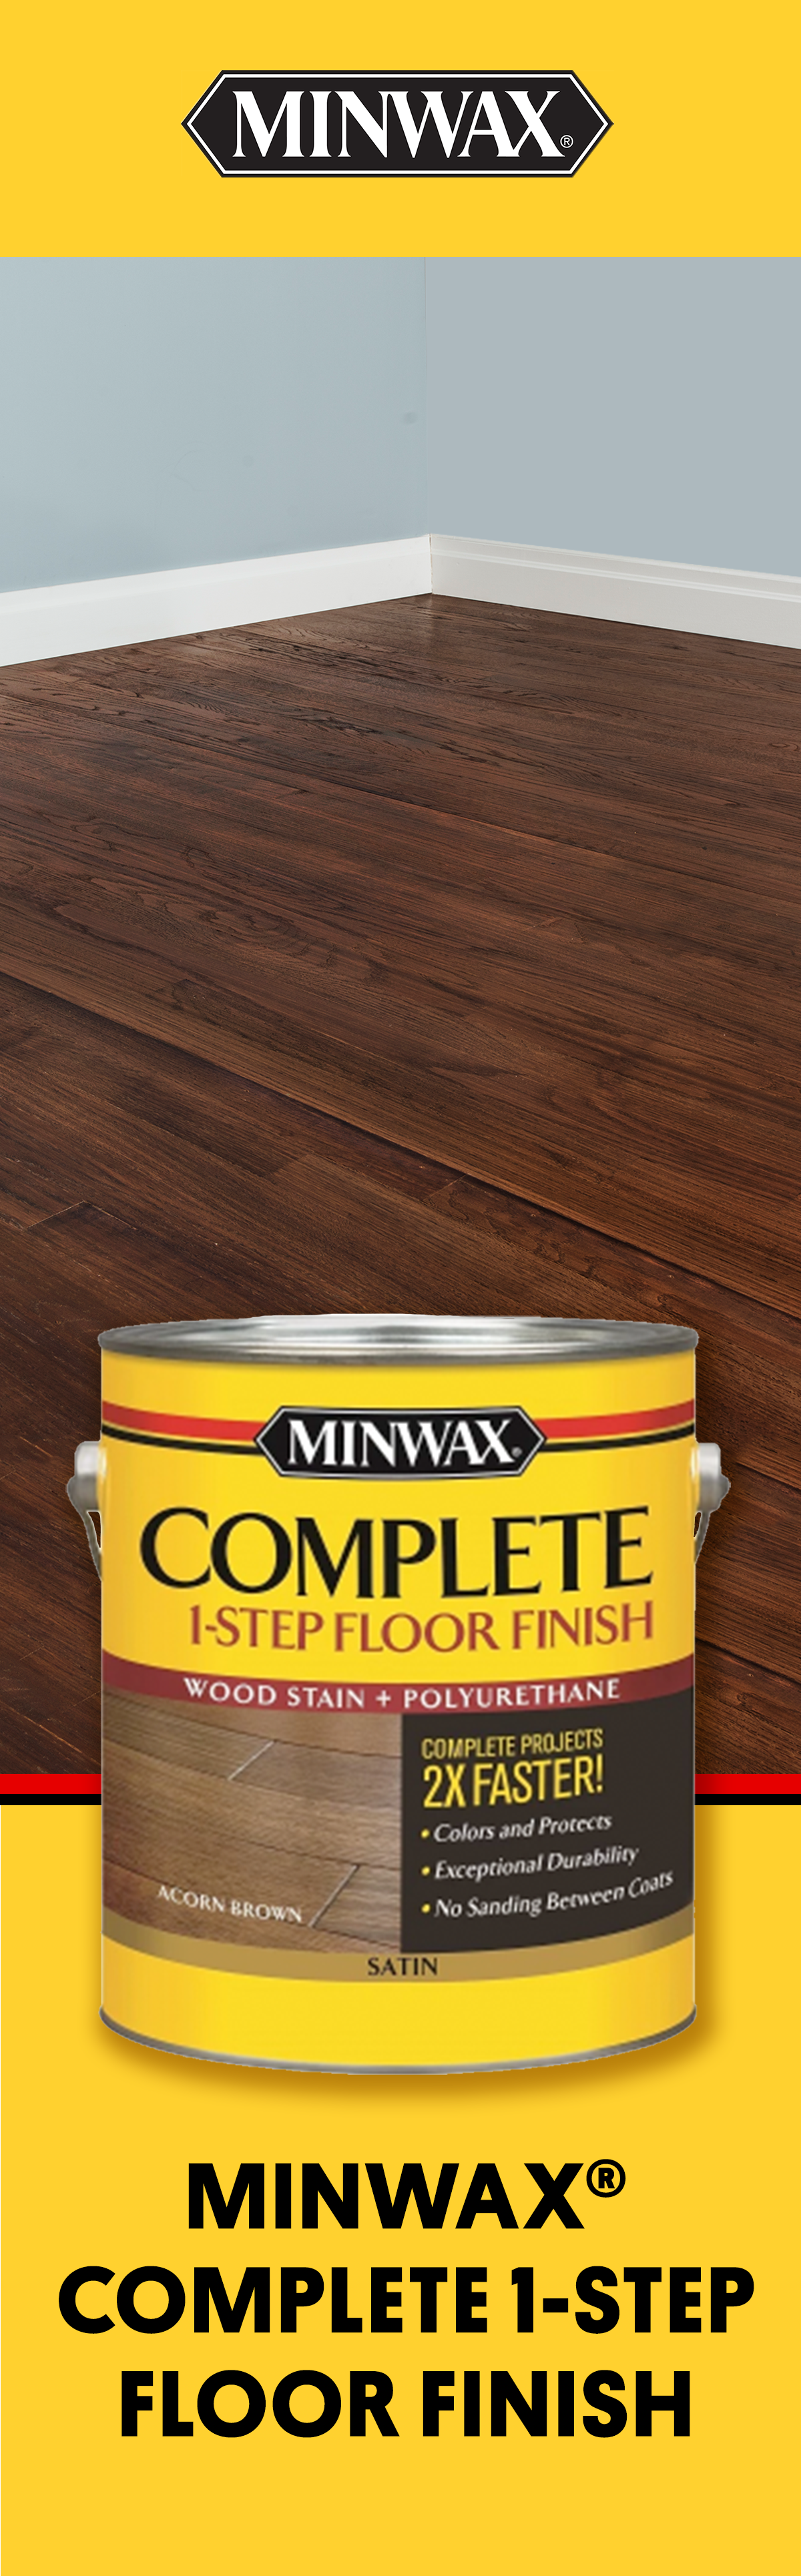 Ready To Bring Your Wood Floors To Life Apply Rich Color And Protective Finish In One Easy Step With Minwax Diy Wood Floors Staining Wood Floors Staining Wood